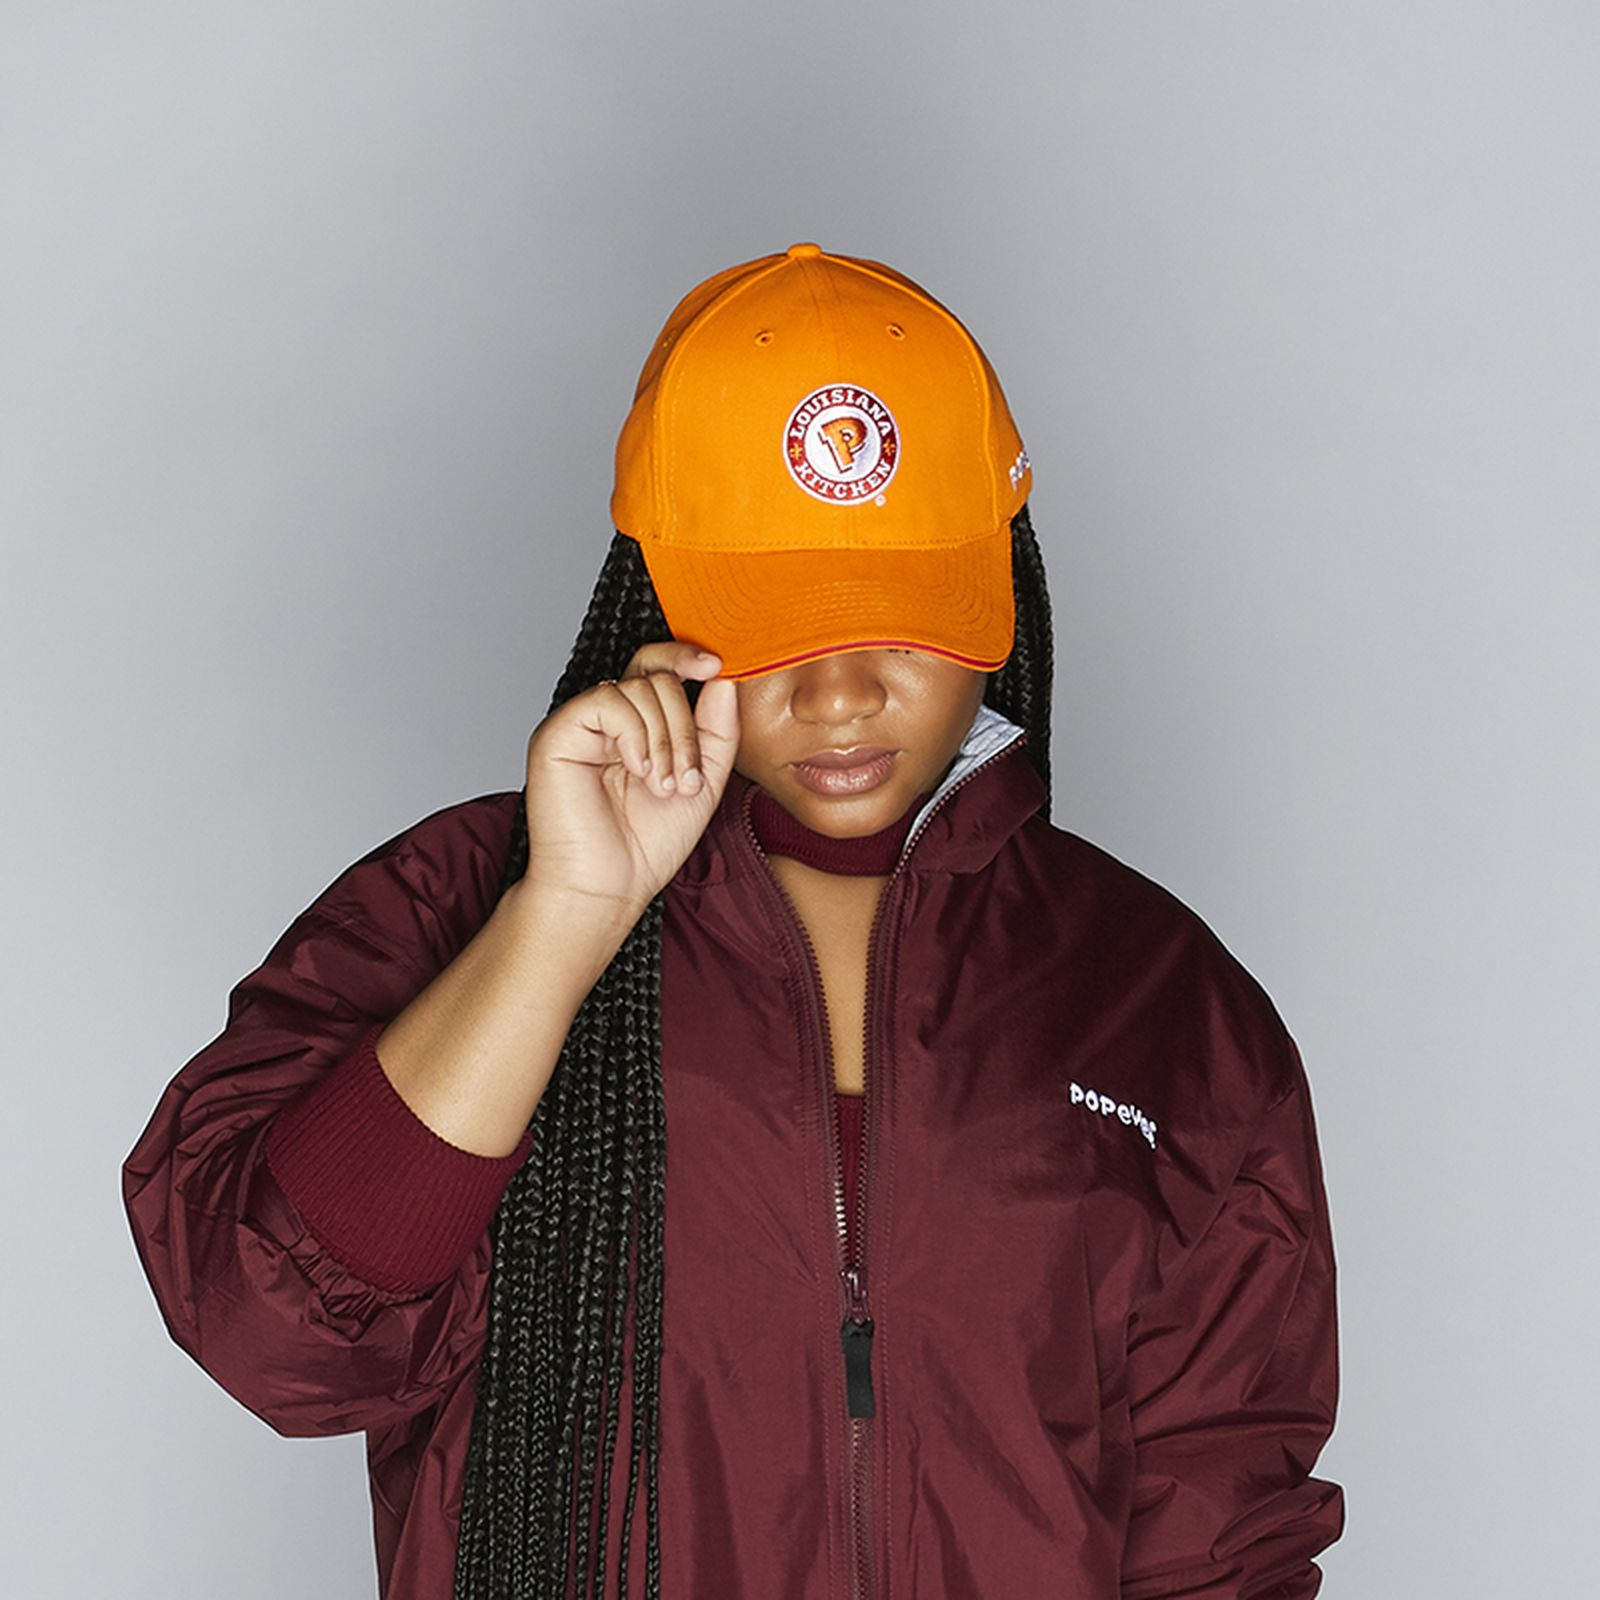 popeyes-uniforms-buy-online-04